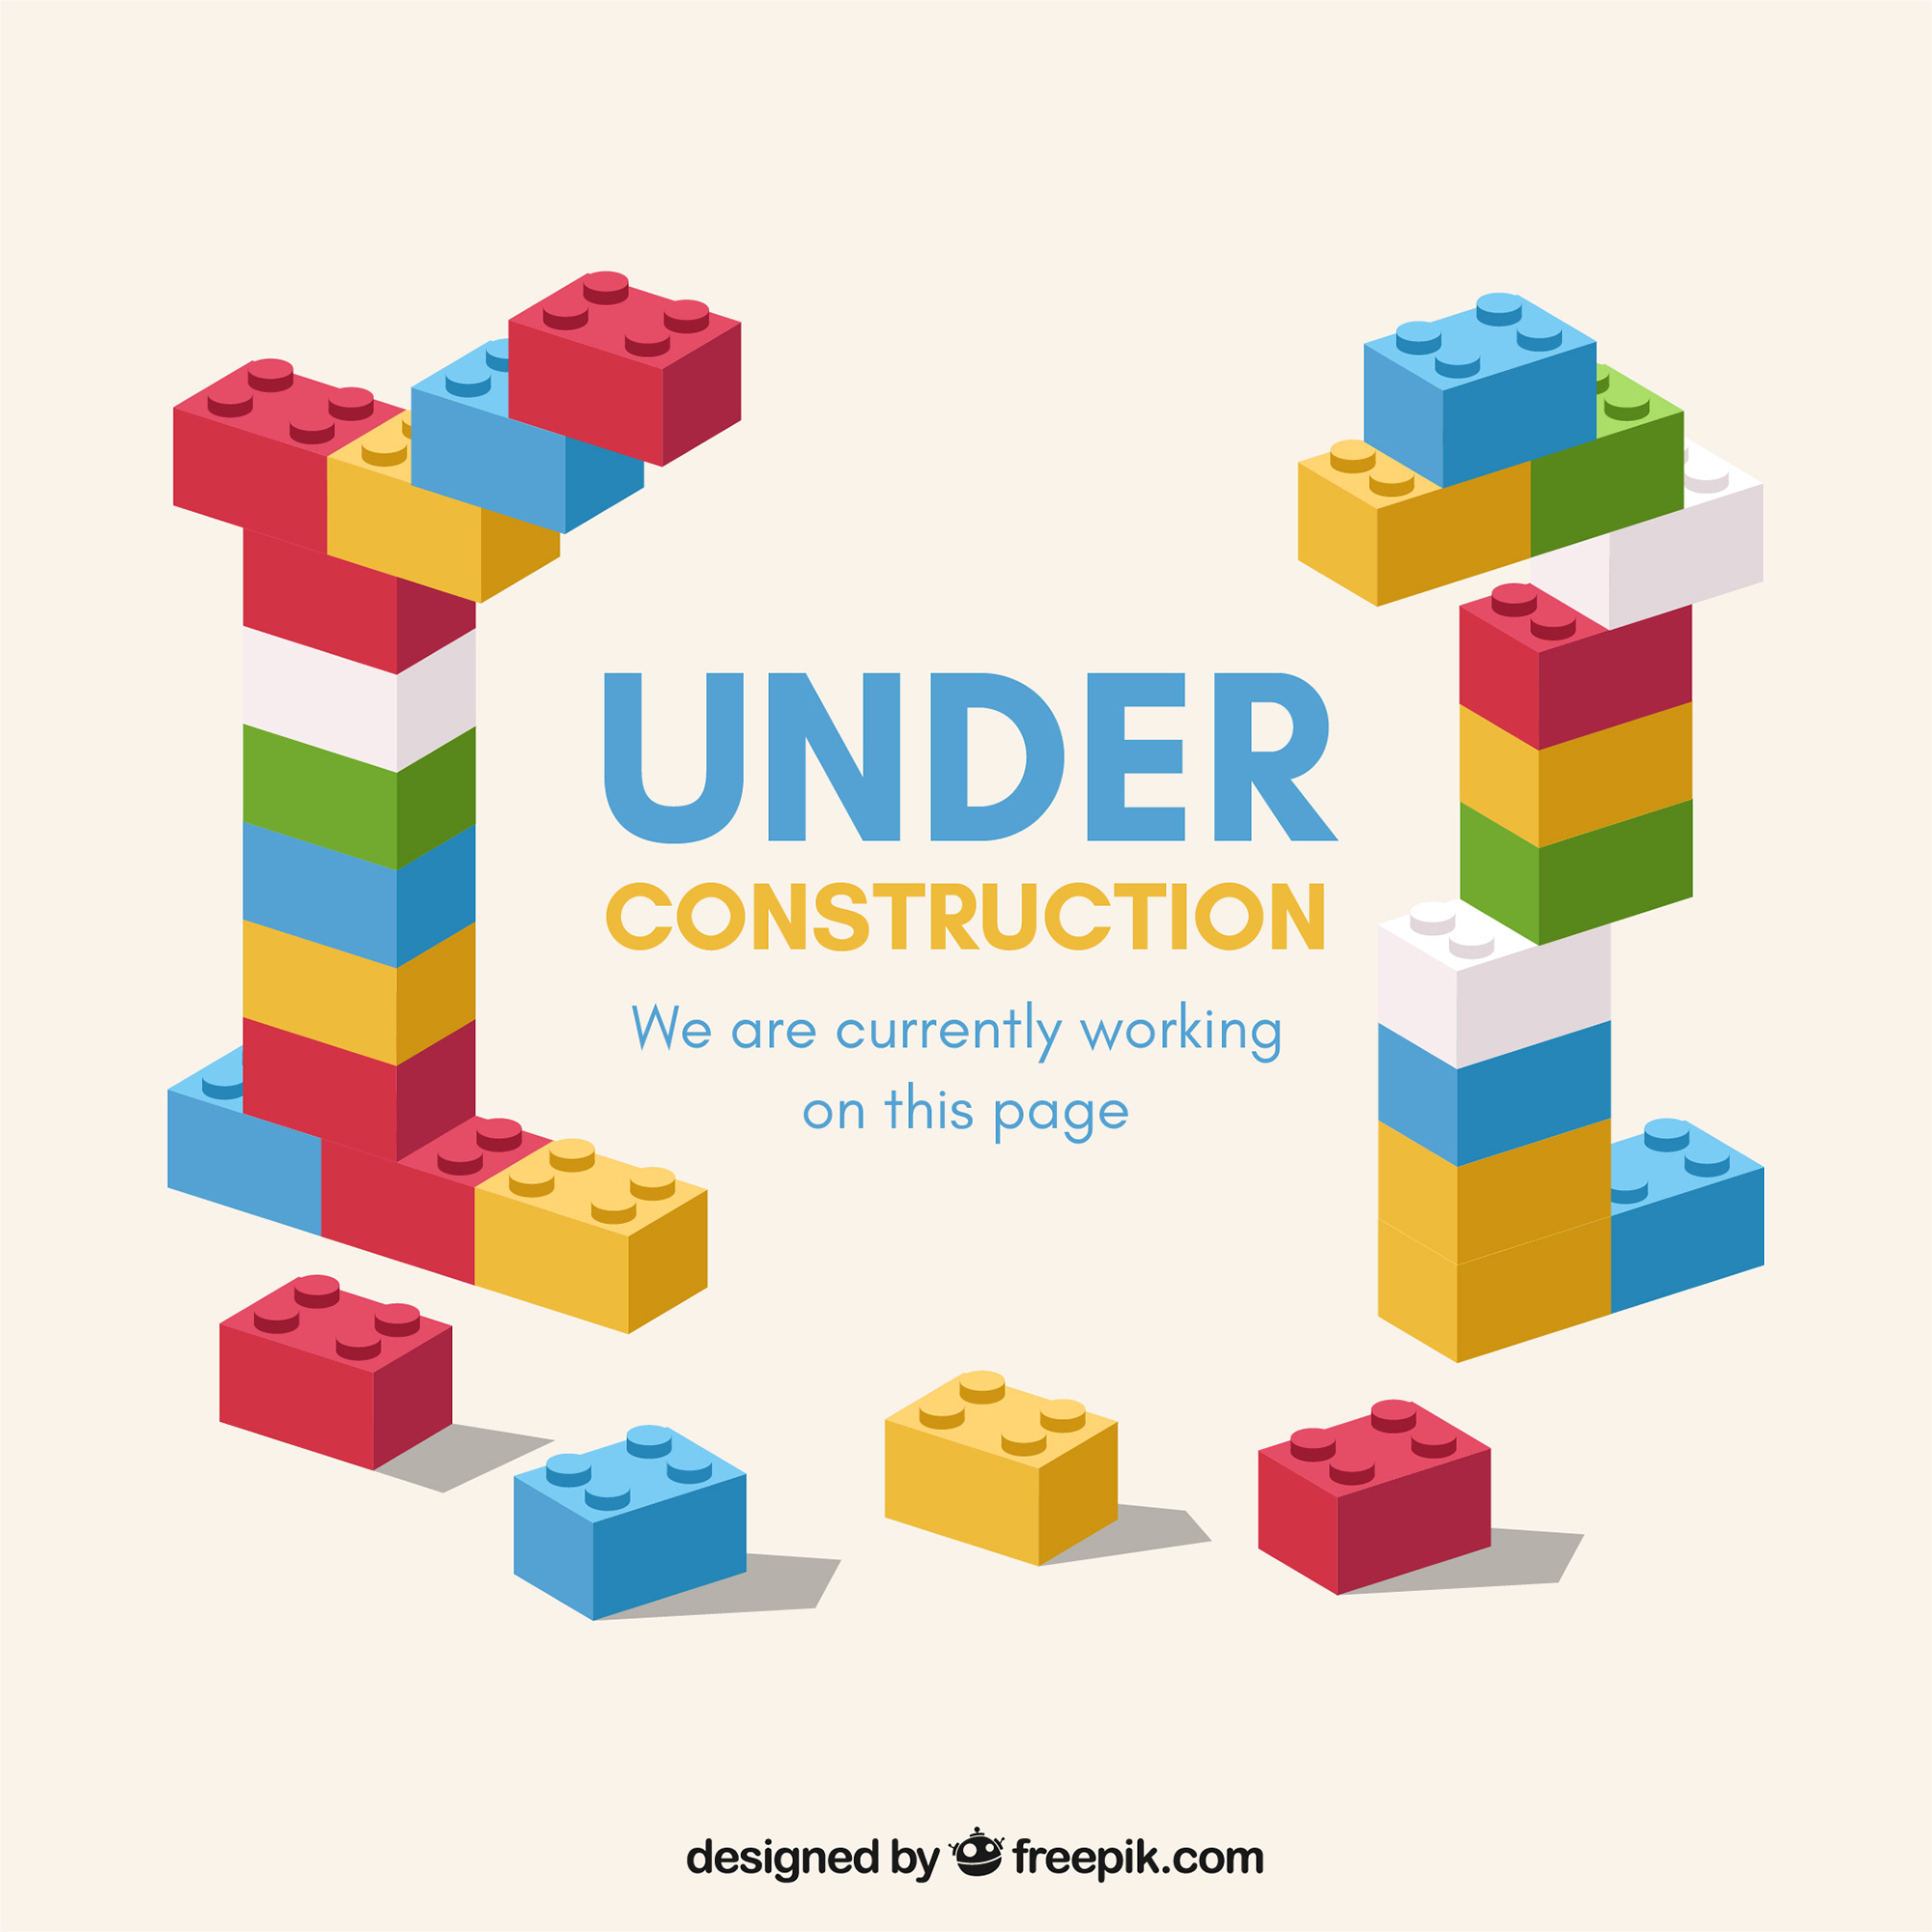 Under Construction by https://www.freepik.com/free-vector/flat-under-construction-template_1584525.htm Designed by Freepik